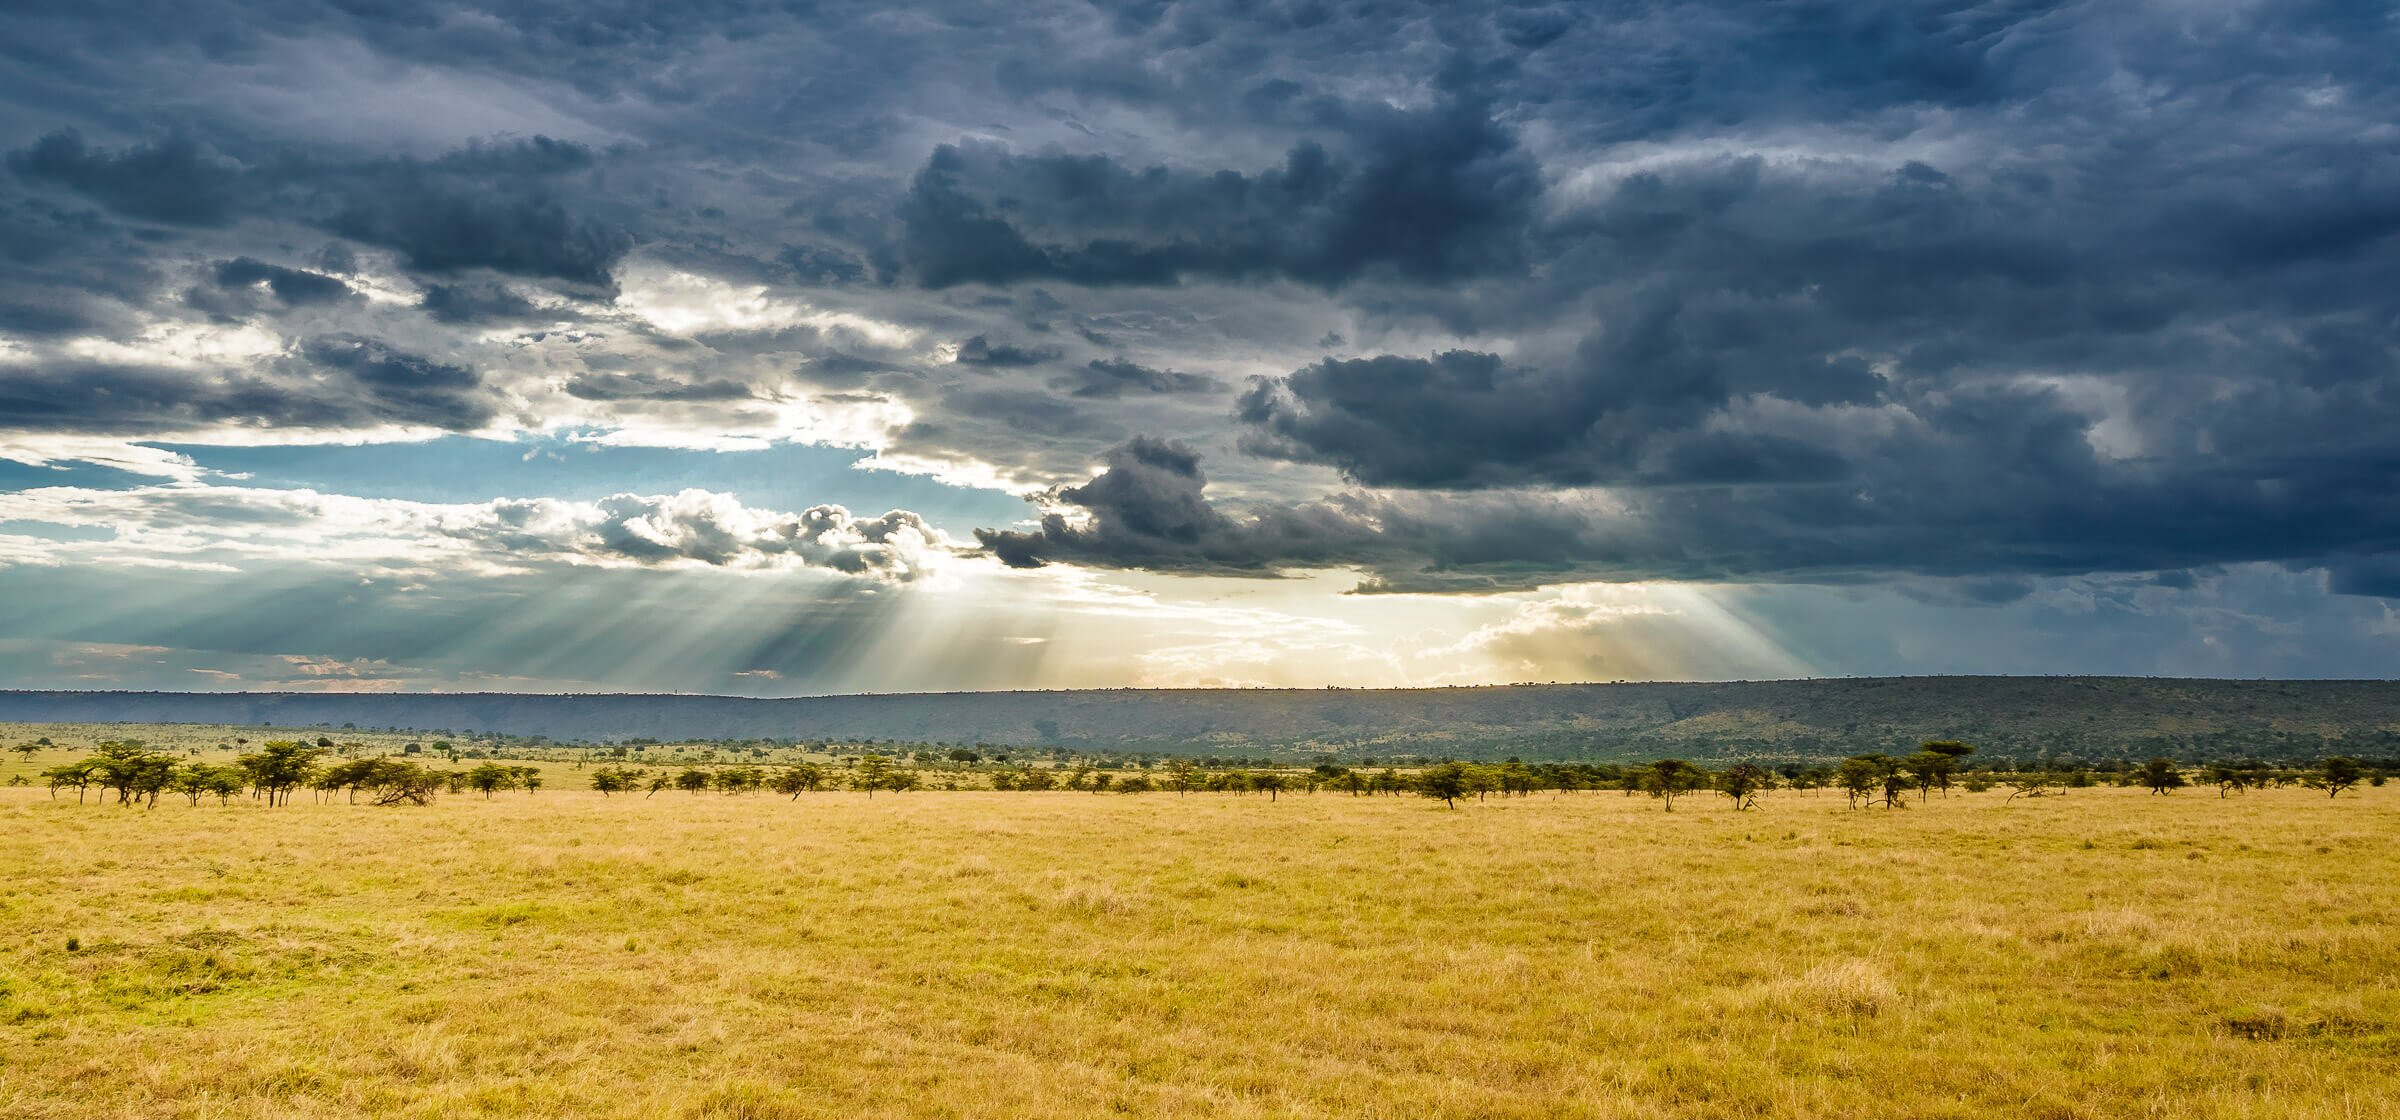 Stormy weather over the Masai Mara